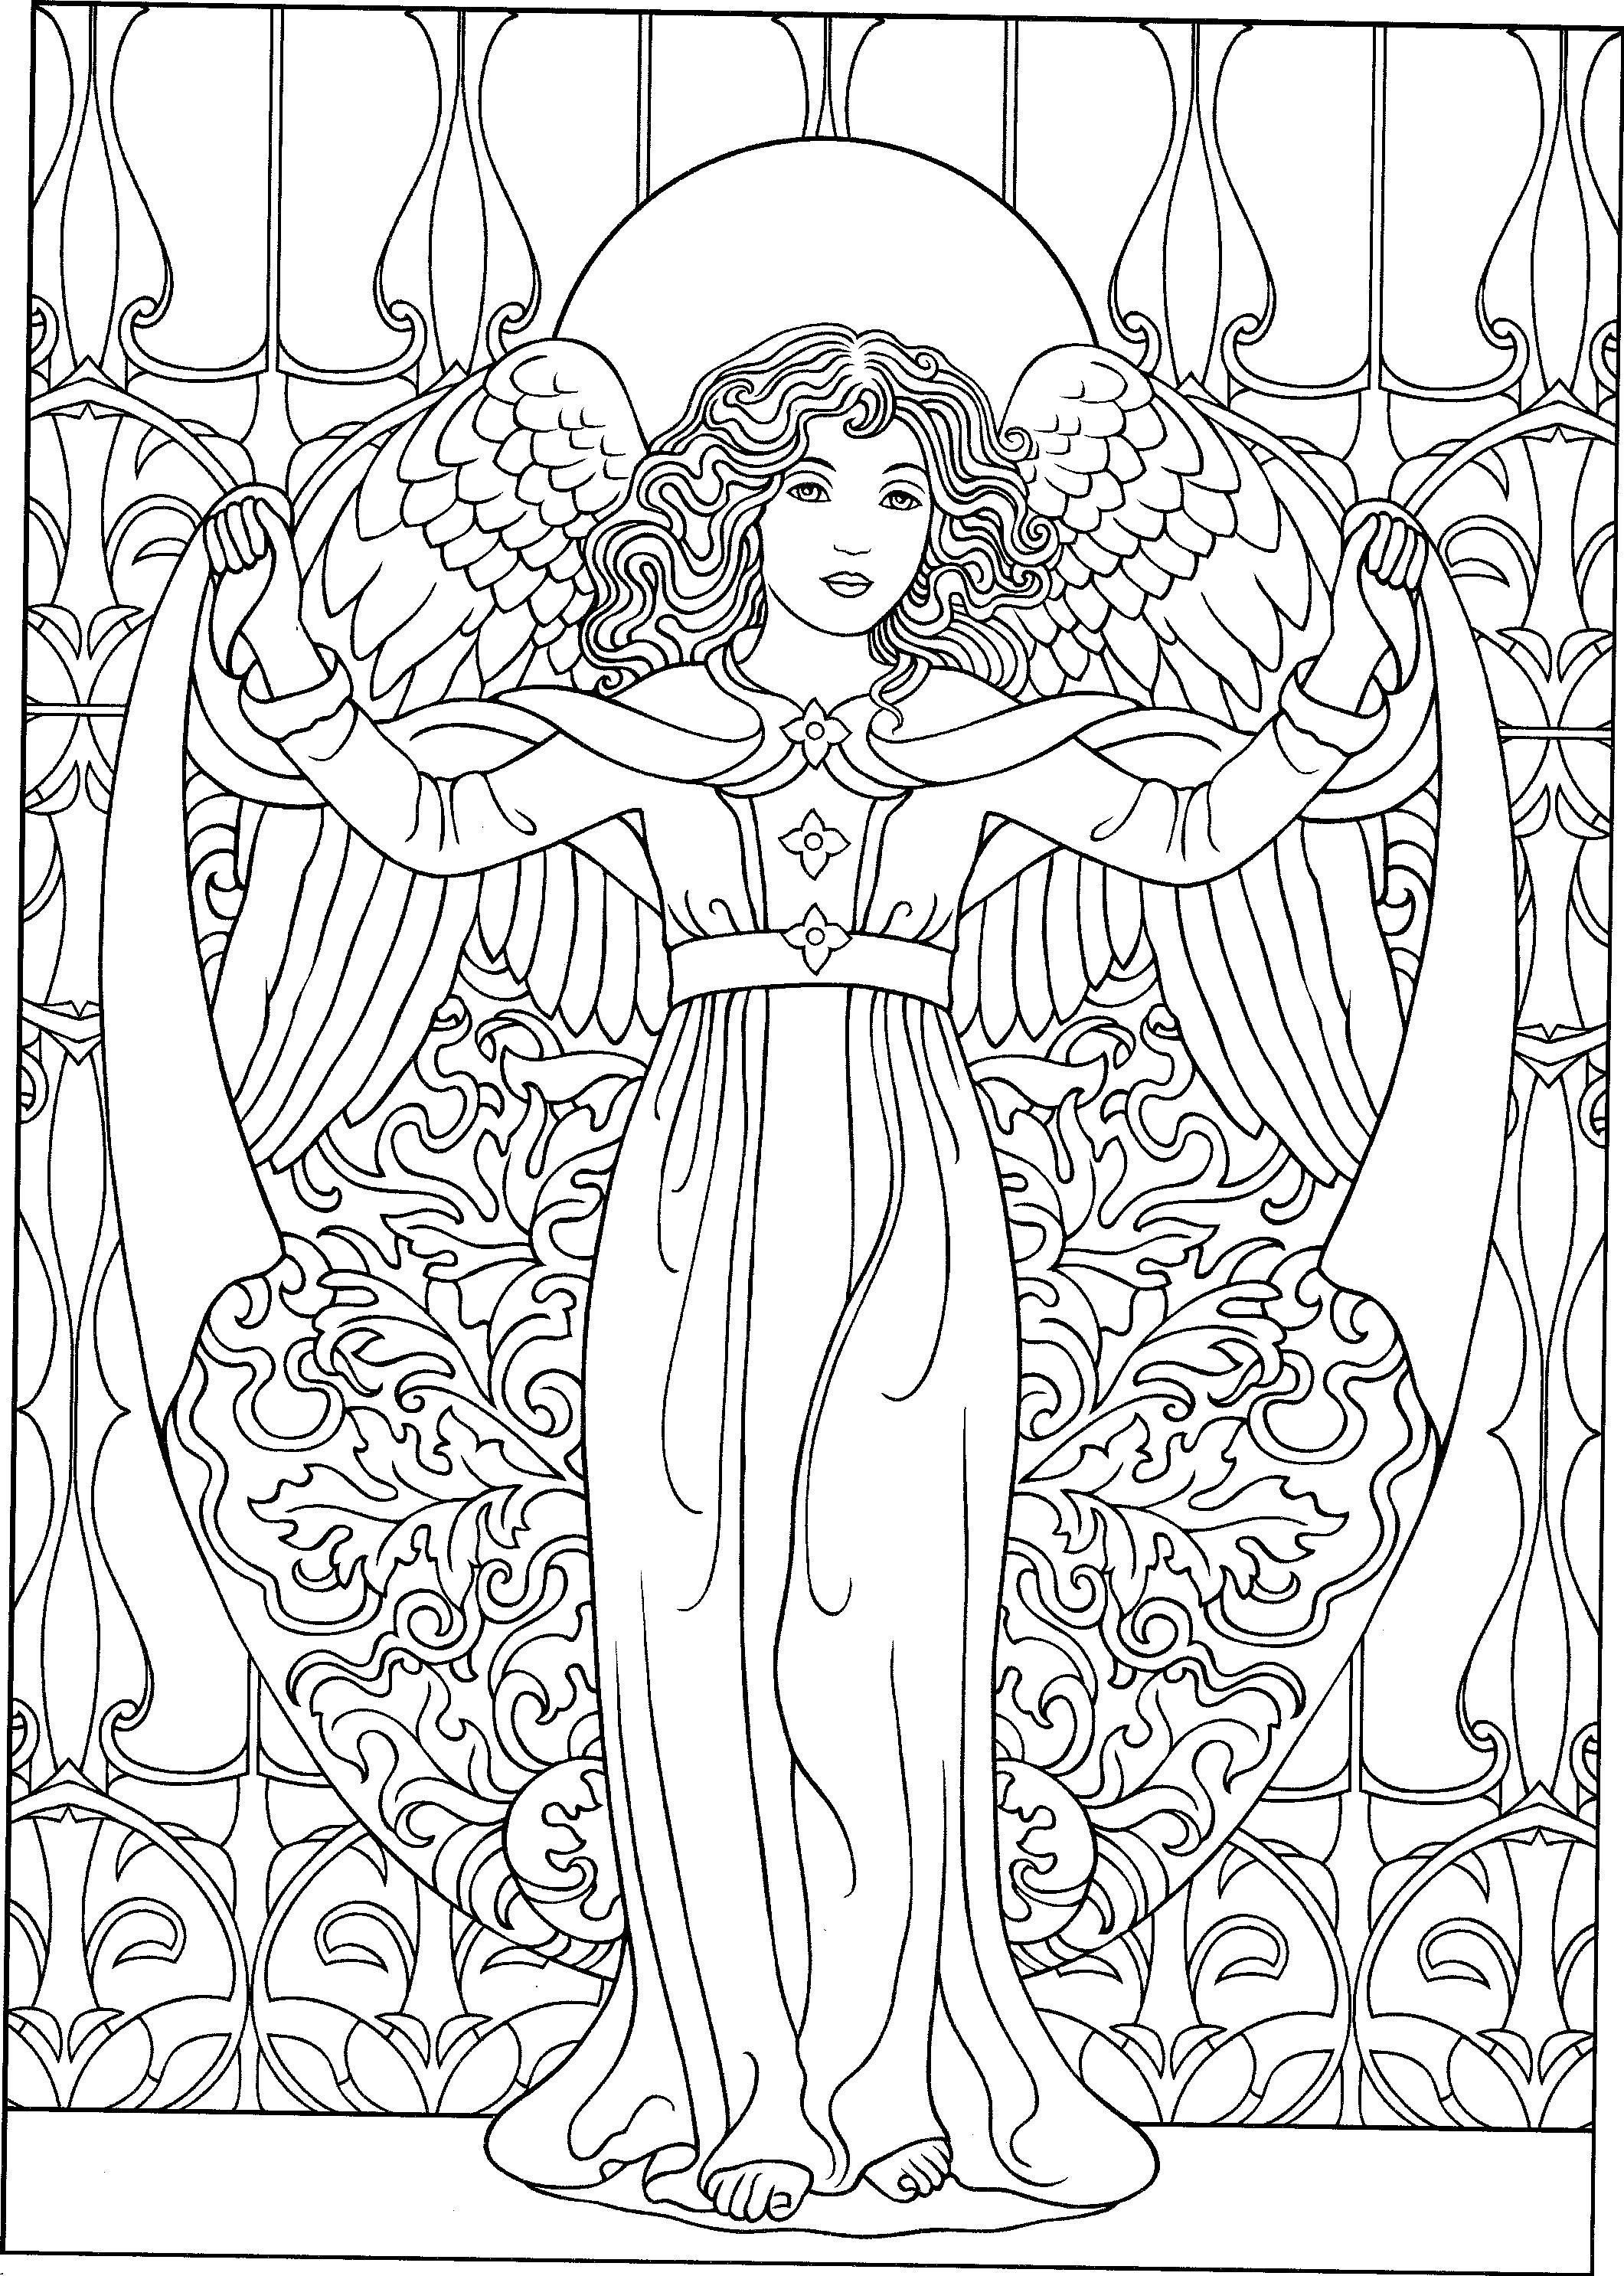 angel coloring page beautiful angel coloring page coloriage image coloriage angel coloring page